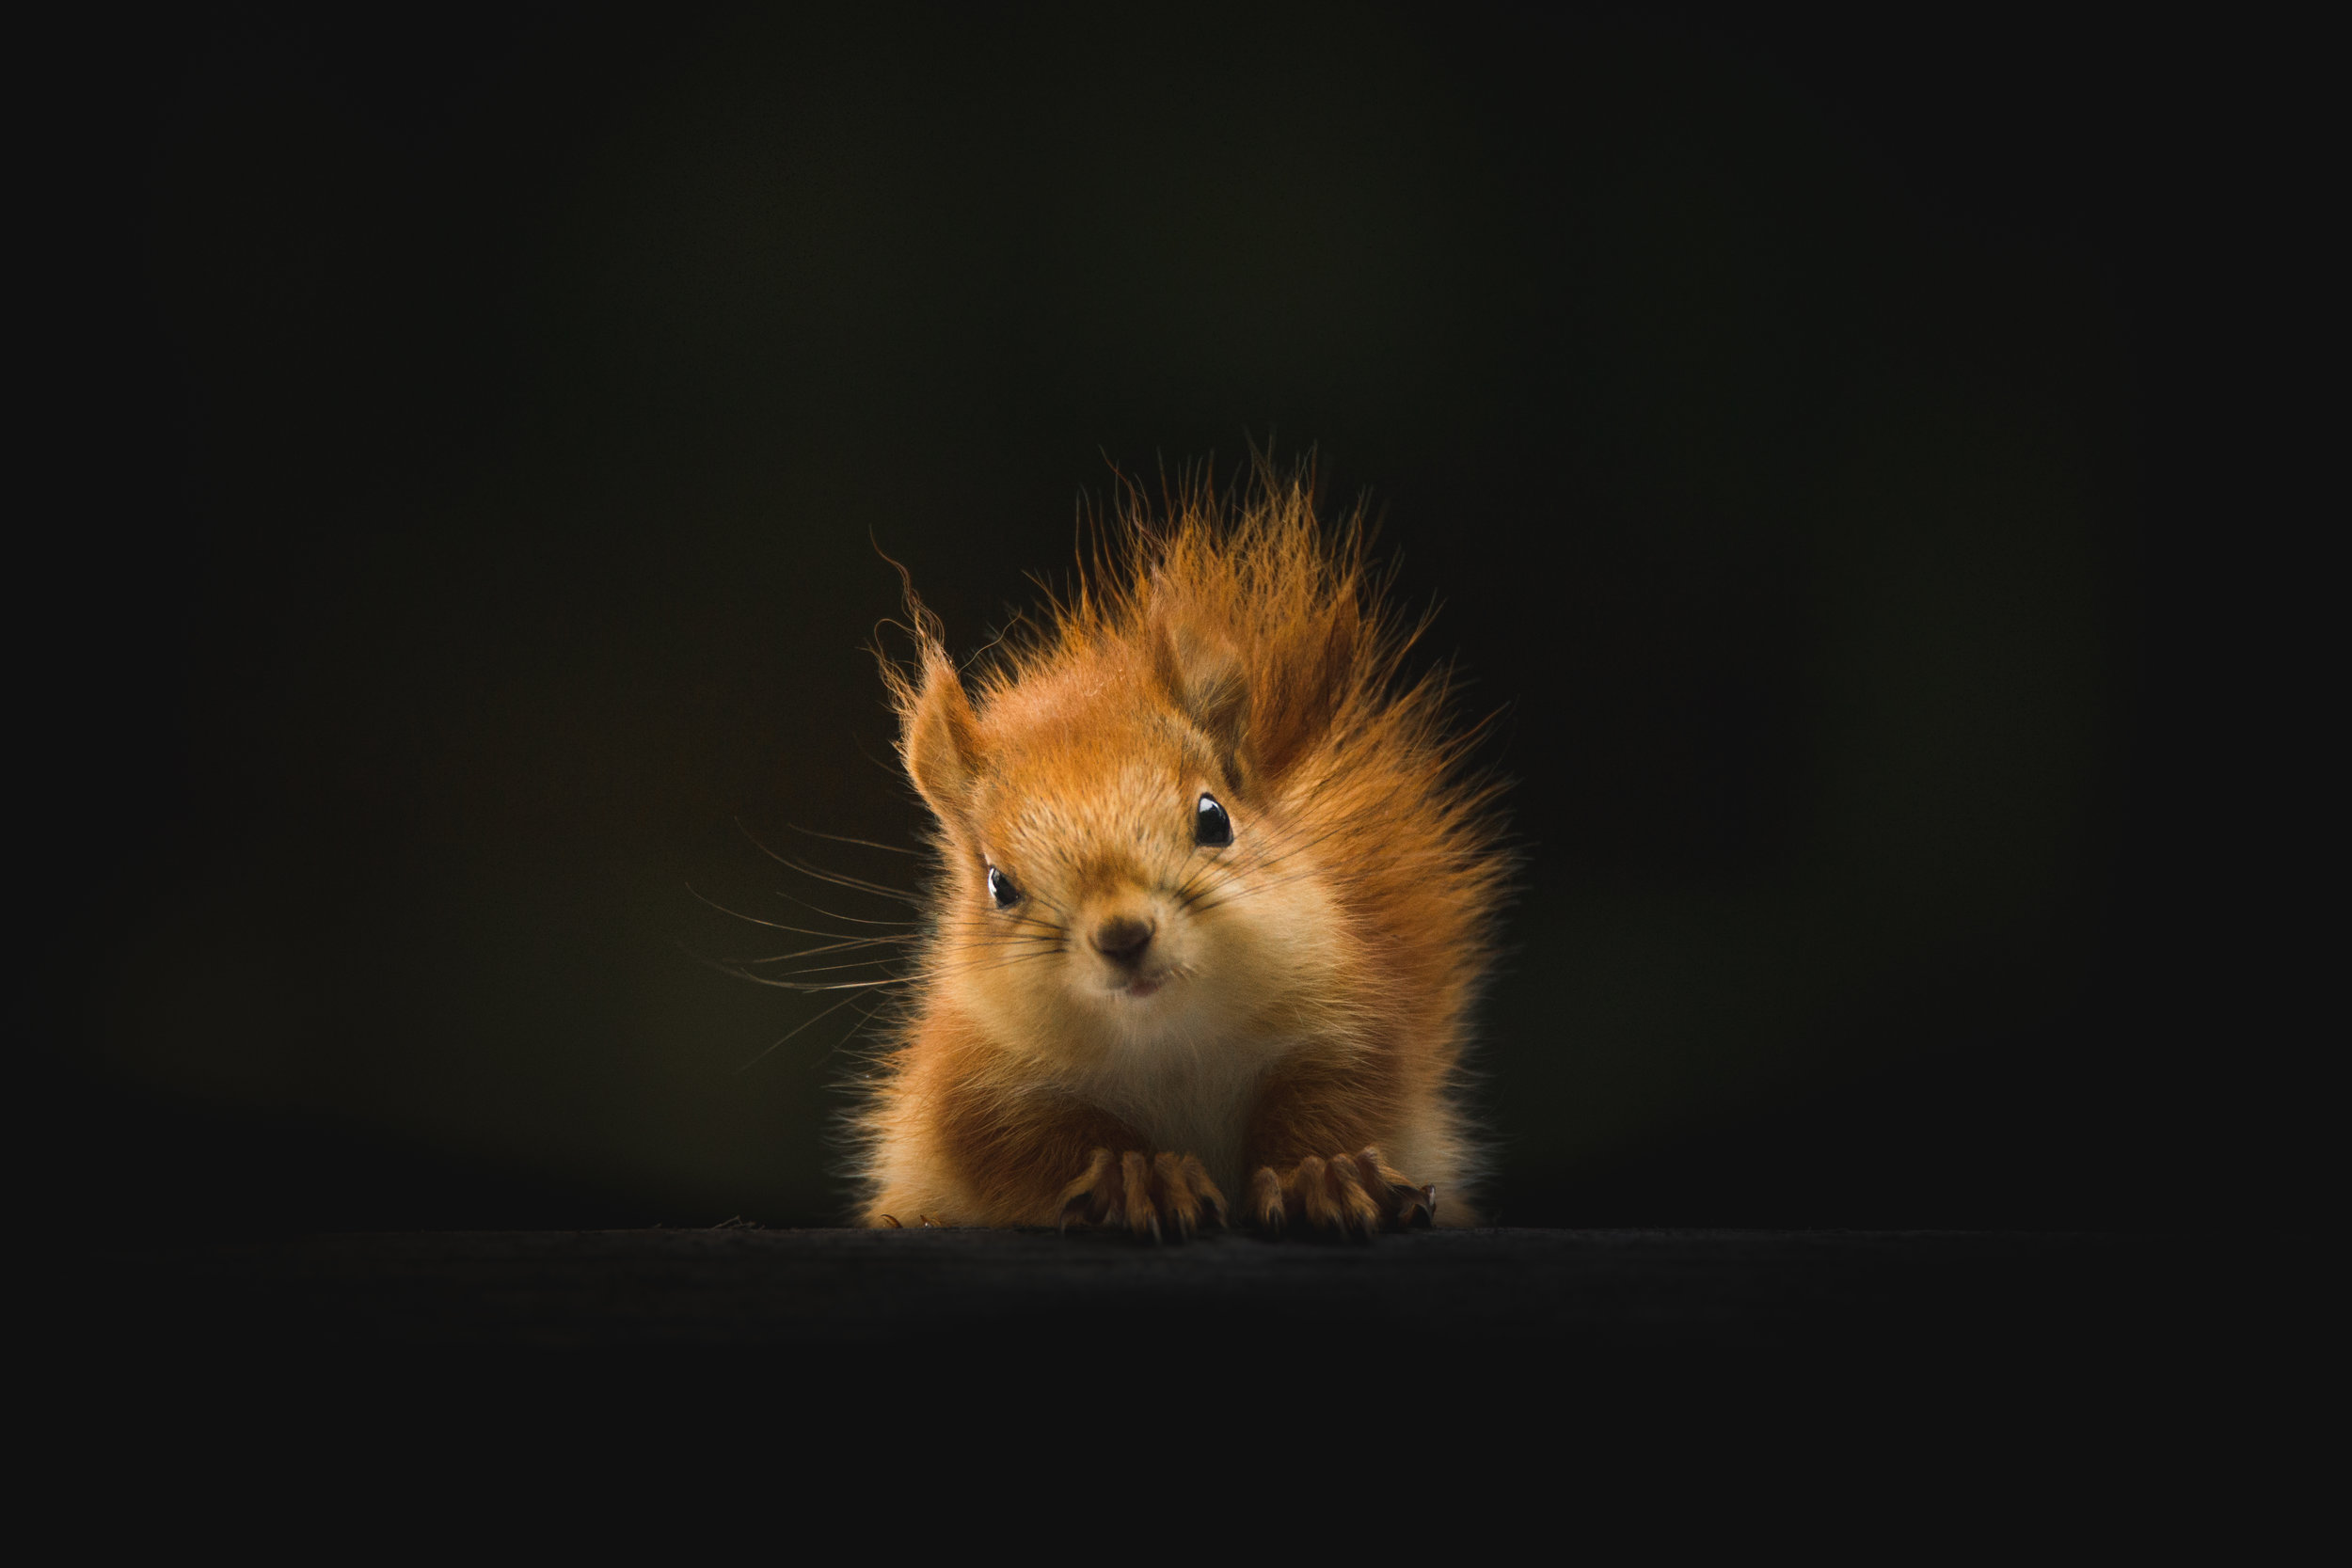 Red squirrel looking at the camera in front of black background.